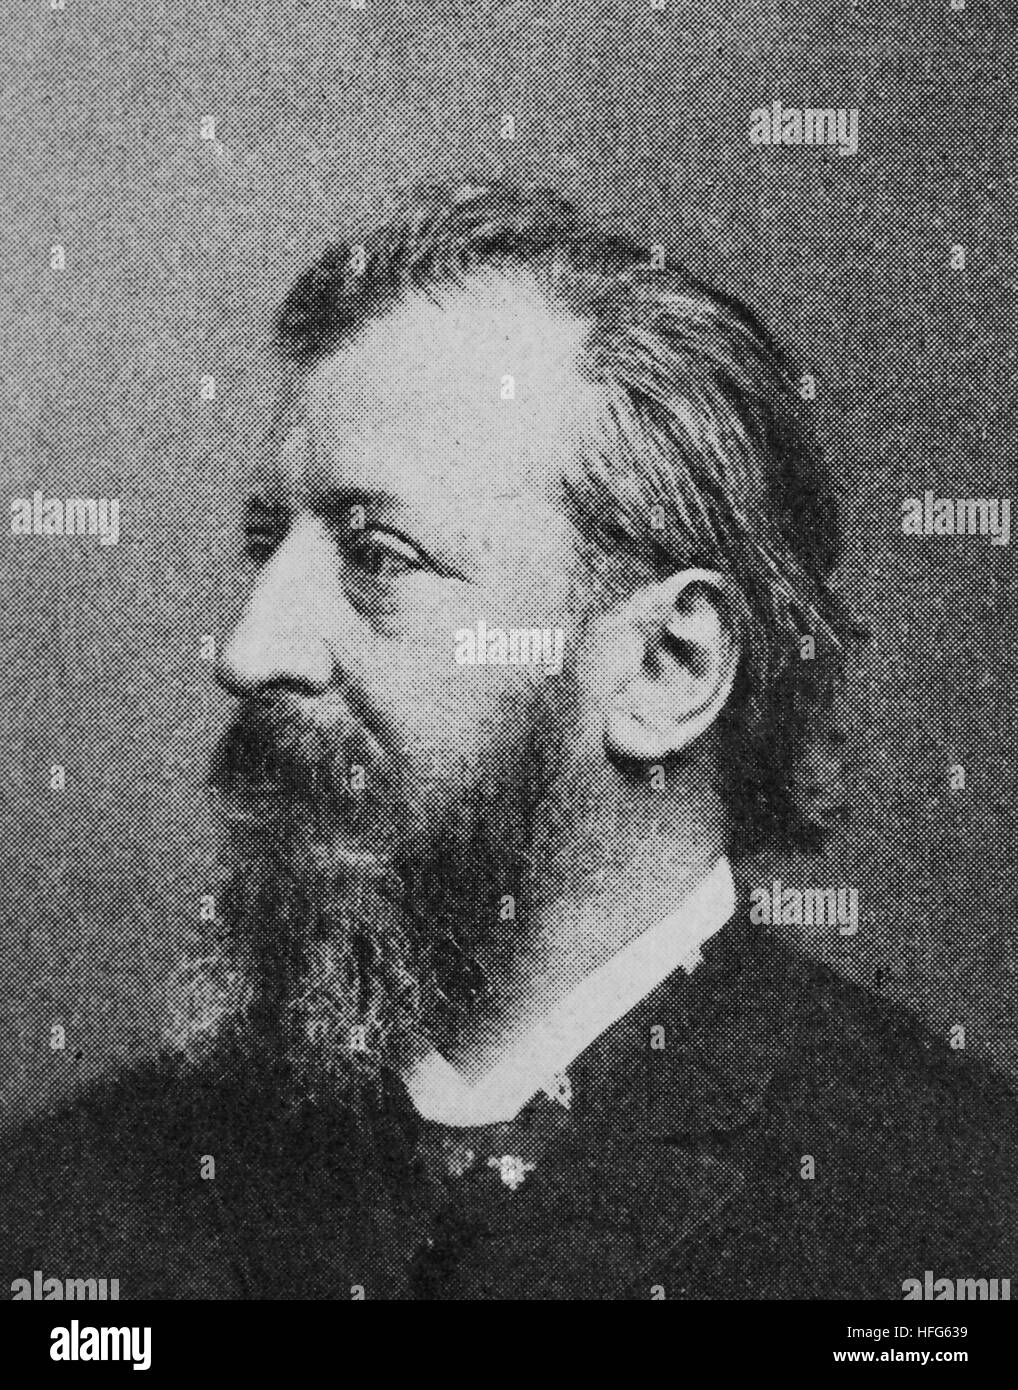 Johannes Trojan, 1837 -1915, Was a German writer, reproduction photo from the year 1895, digital improved - Stock Image